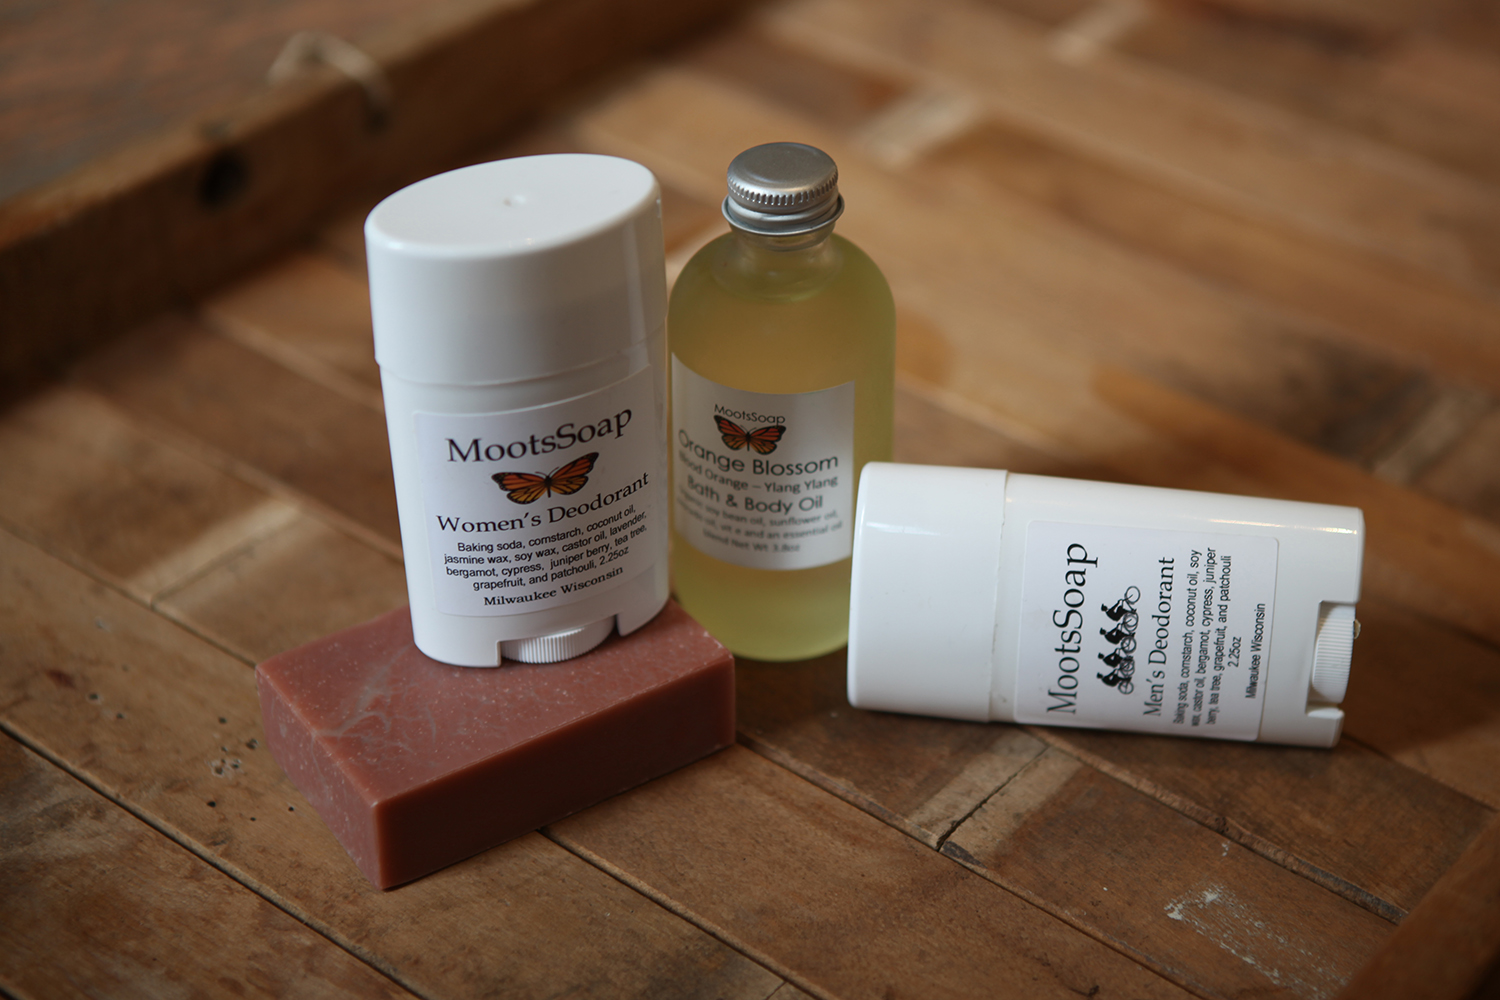 Men and Women's Deodorant, $8.  Orange Blossom Bath and Body Oil, $12.